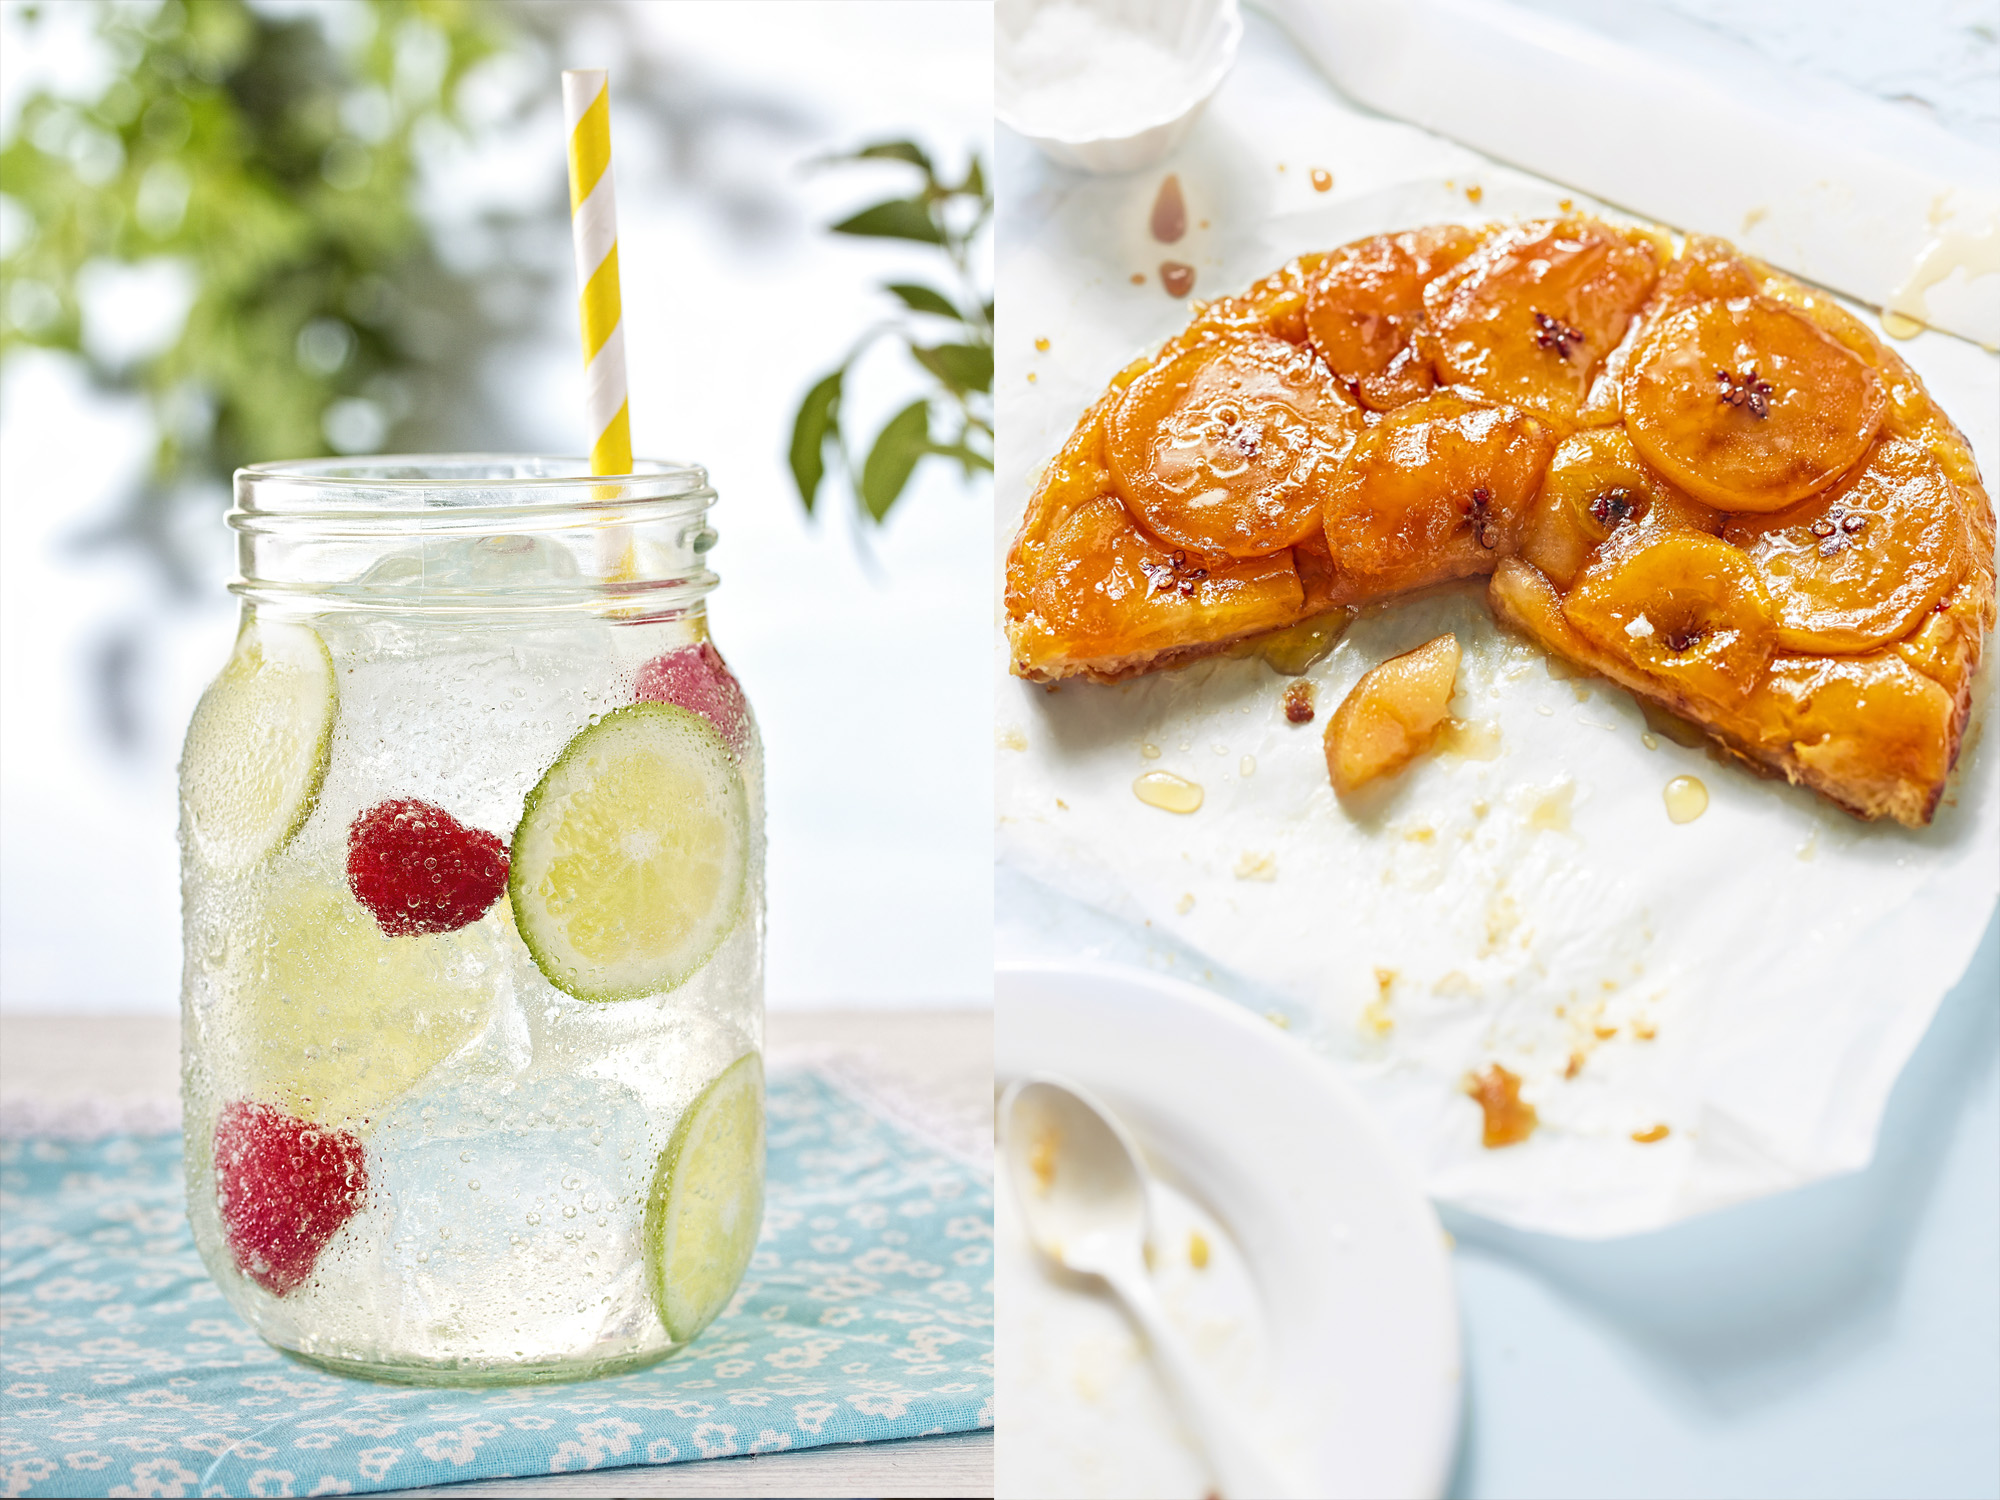 Limonade and apple tart